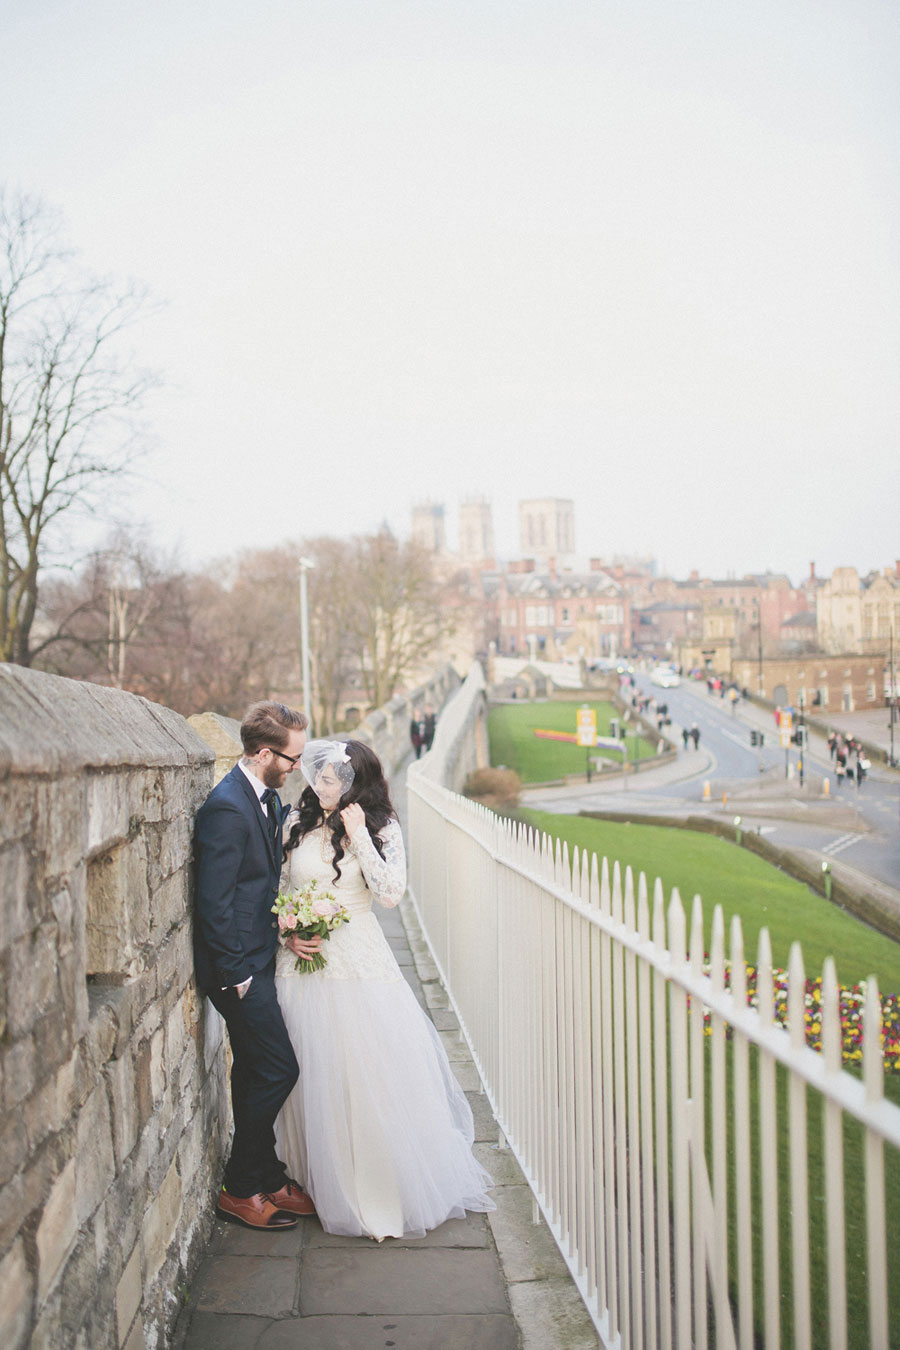 Eclectic Vintage Wedding in York With 50s Style Bride: Jemma & Lee ...